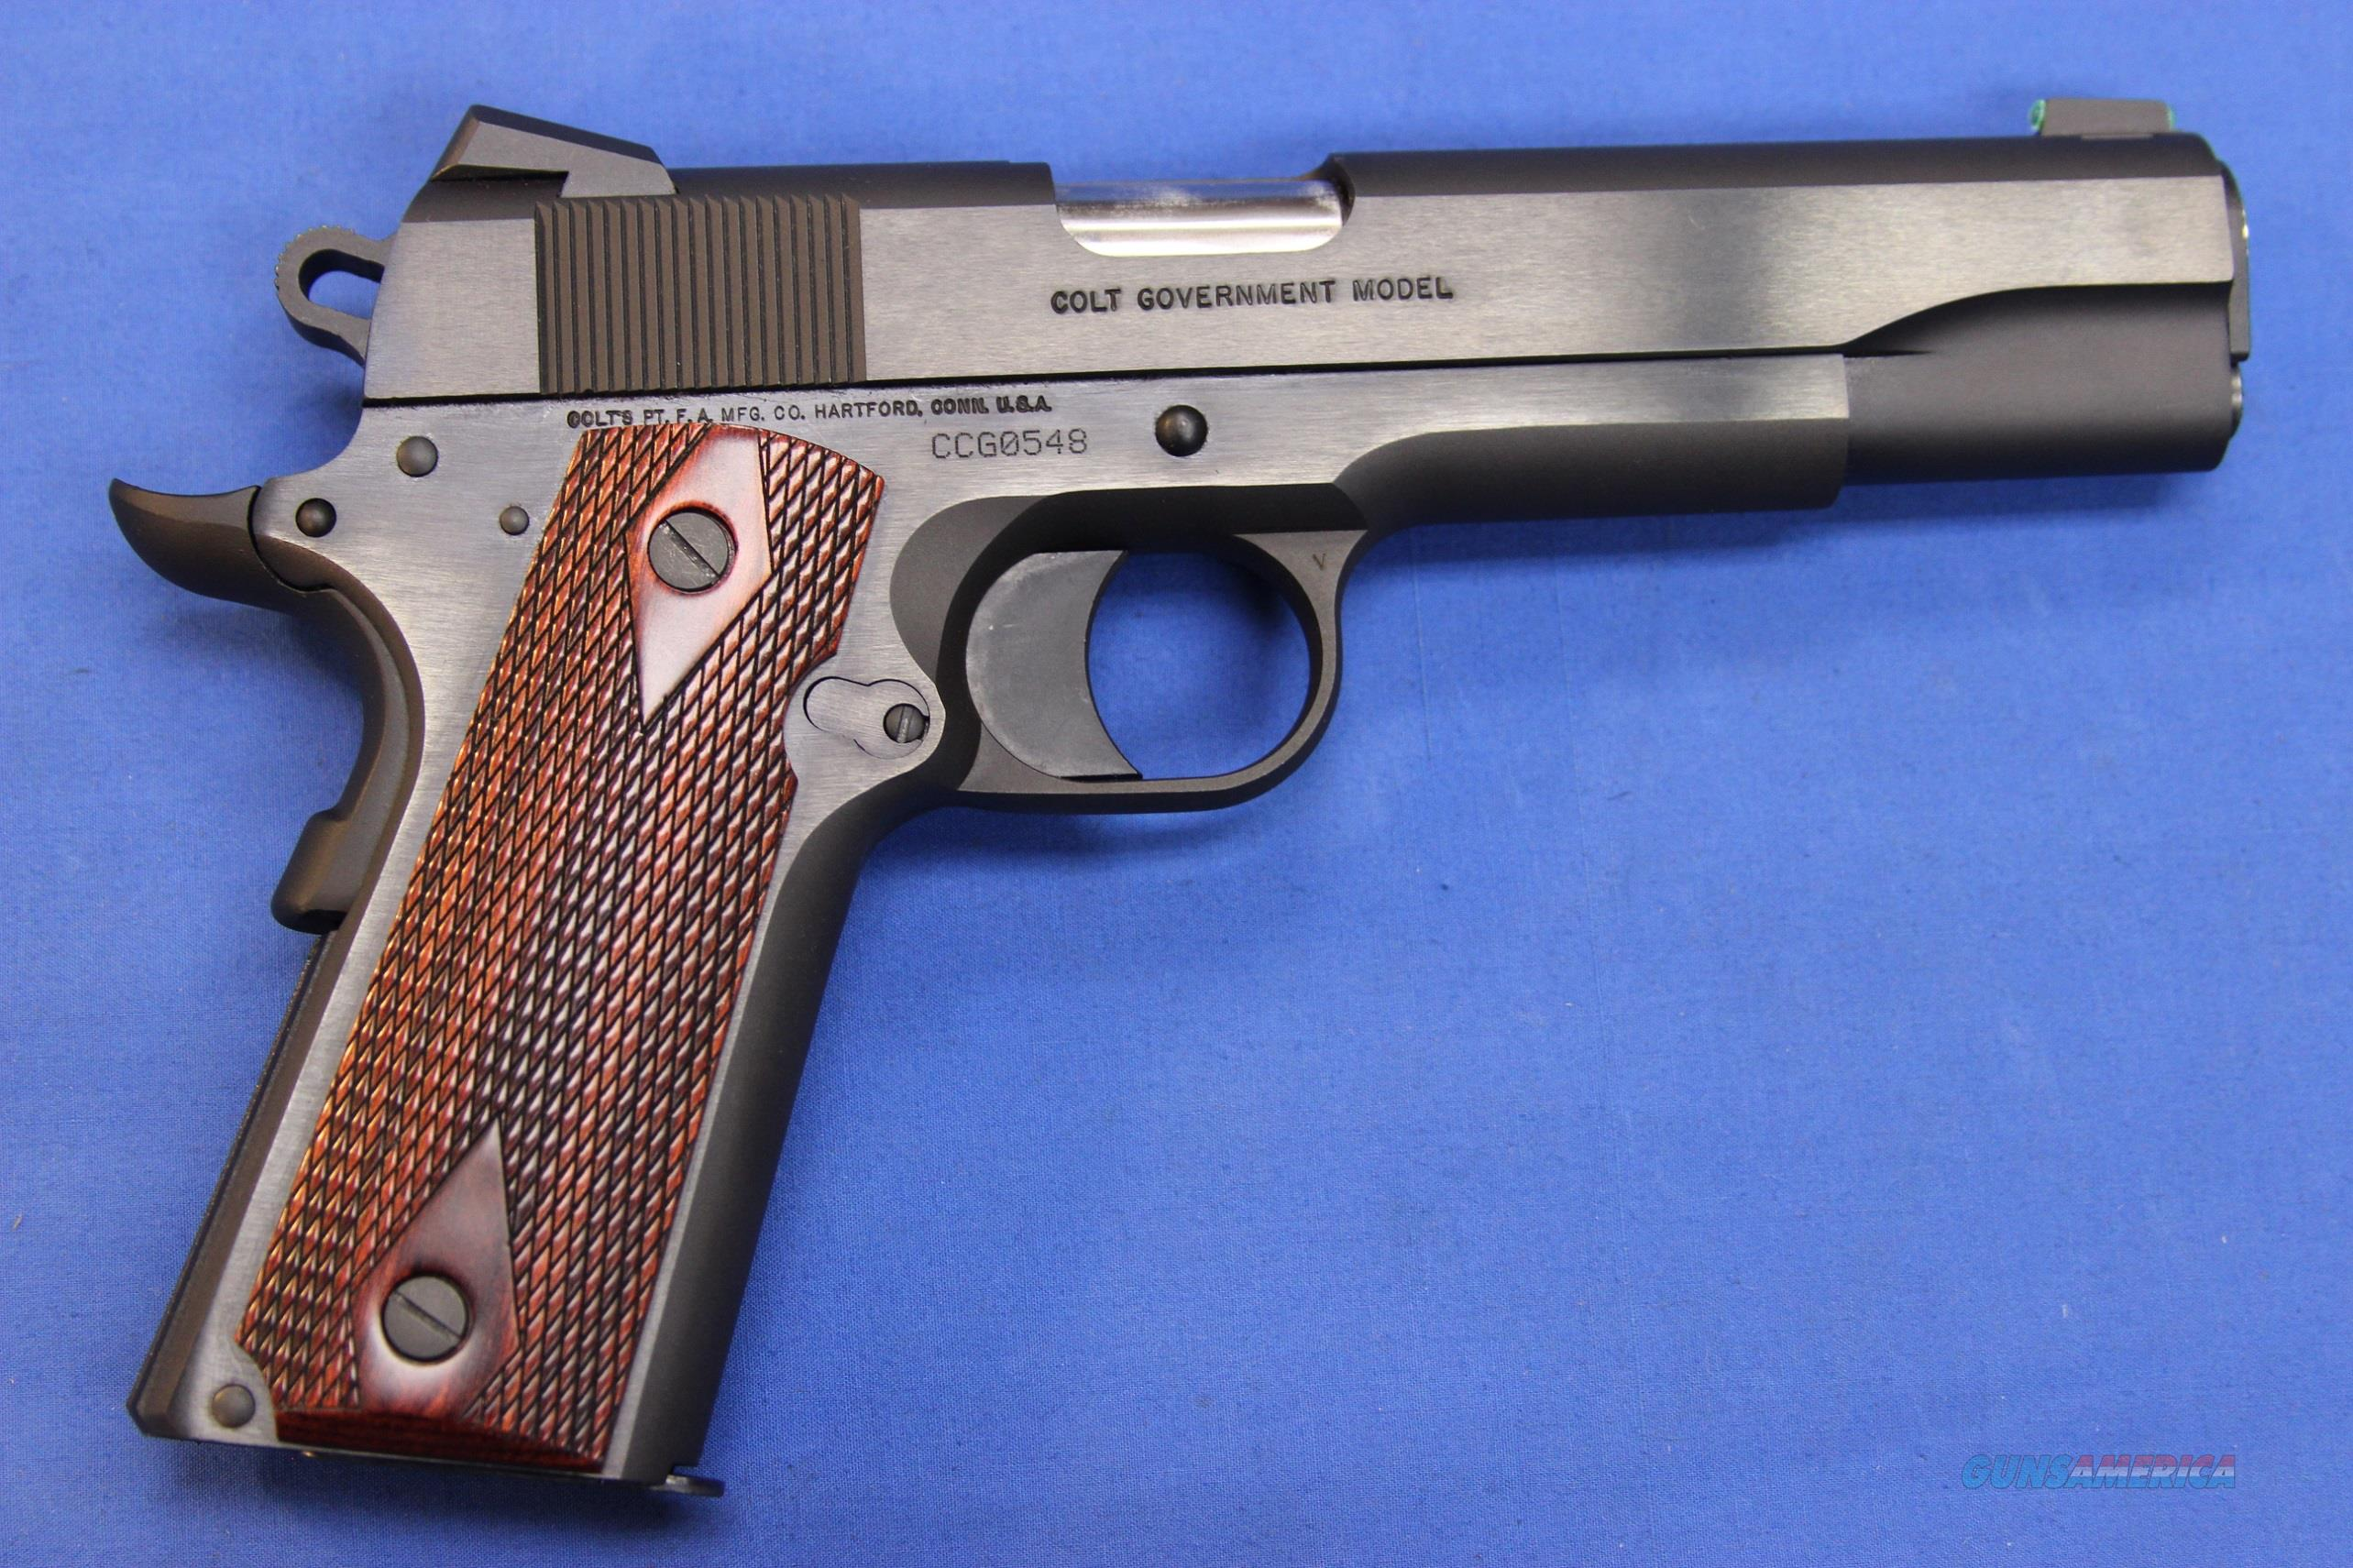 COLT 1911 GOVERNMENT .45 AUTO w/ BOX for sale